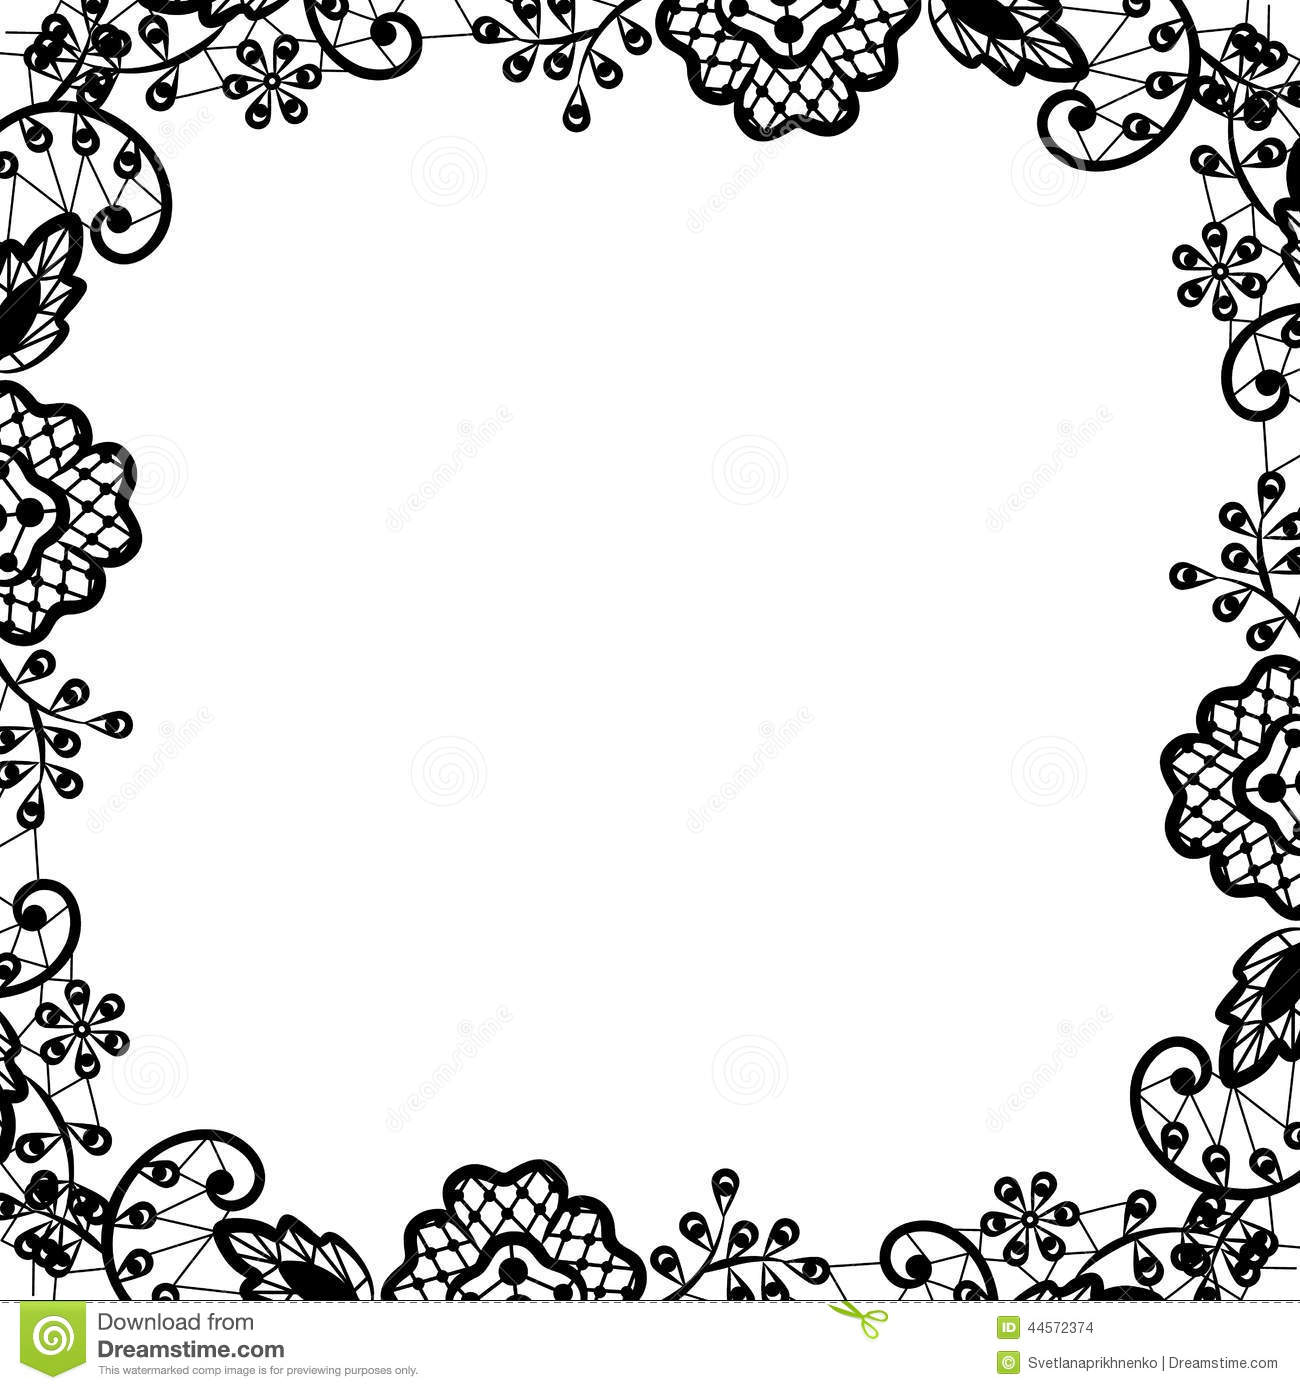 Black Lace On White Background Stock Vector - Illustration of ...